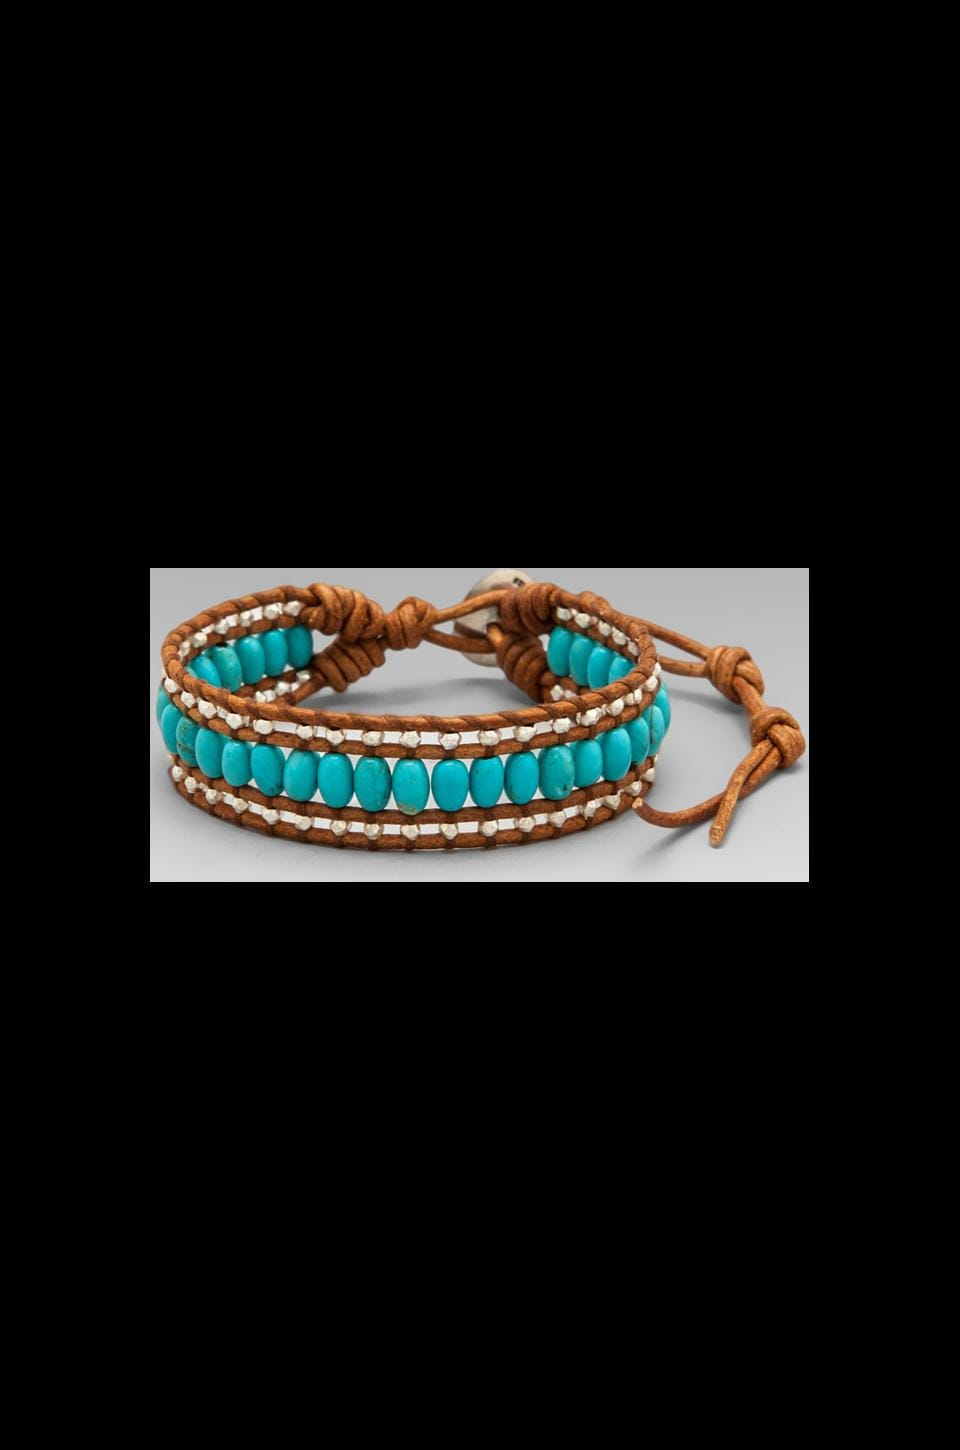 CHAN LUU Wrap Bracelet in Turquoise/Natural Brown